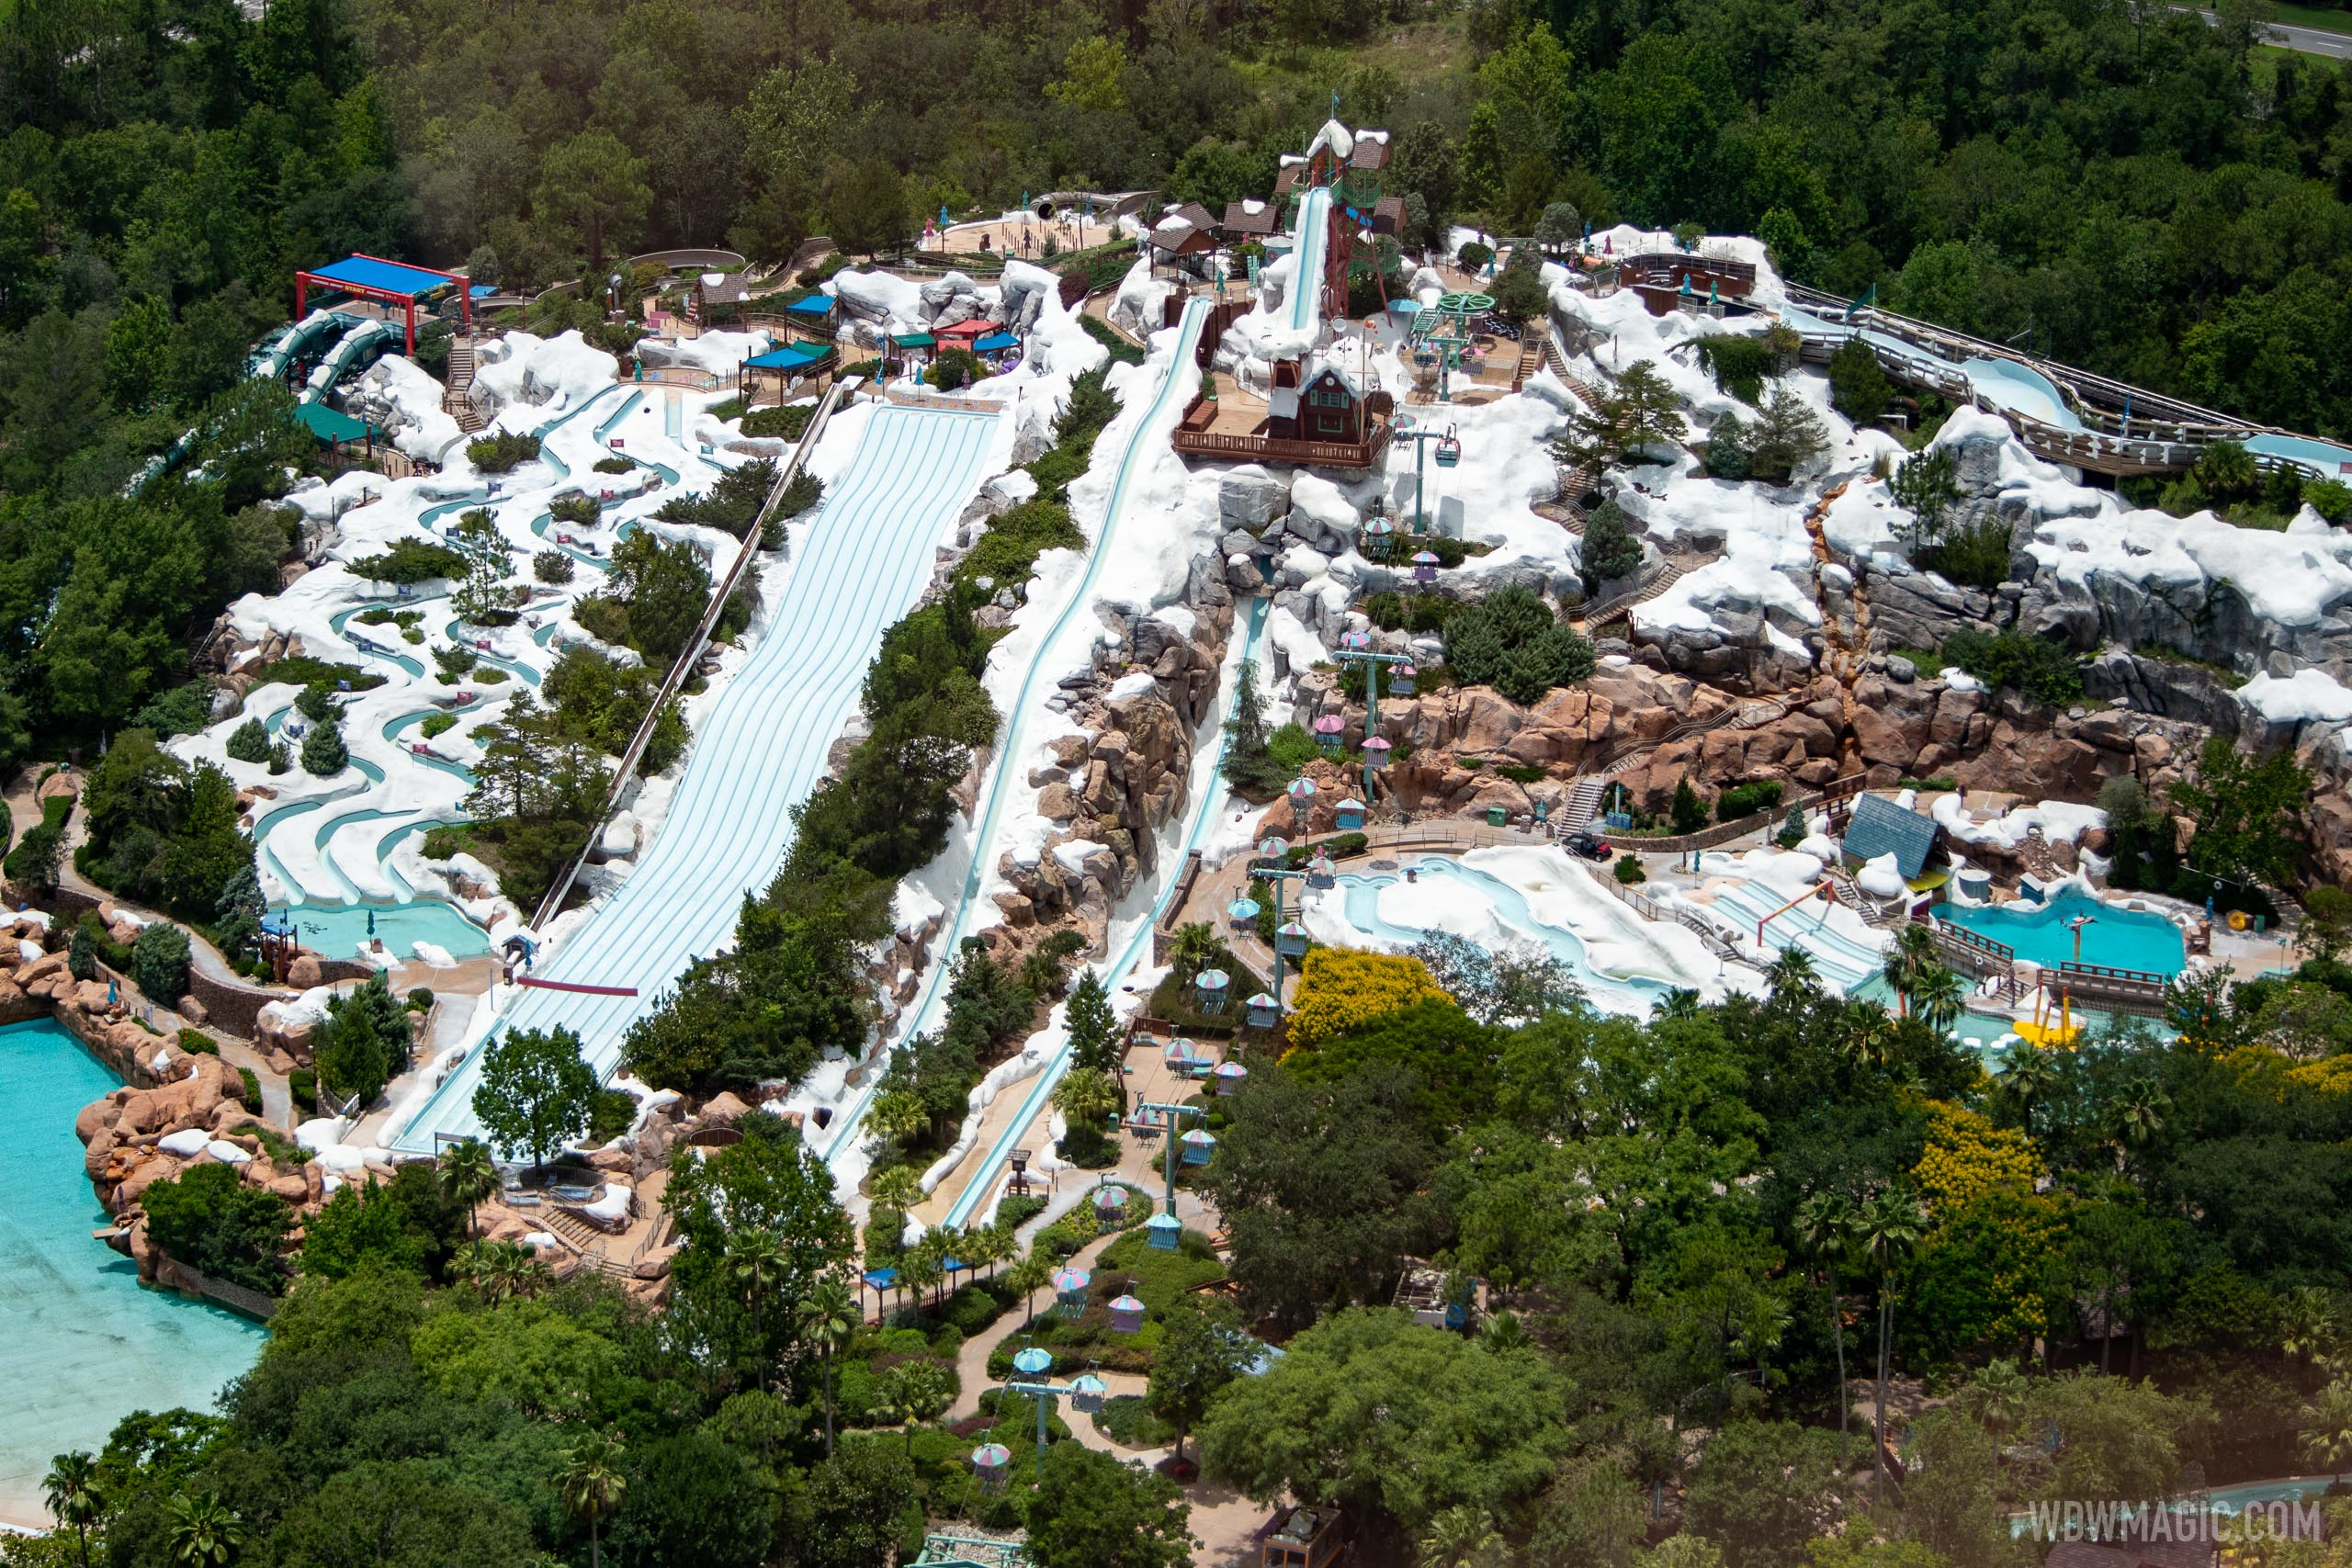 Blizzard Beach closed during the COVD-19 shutdown